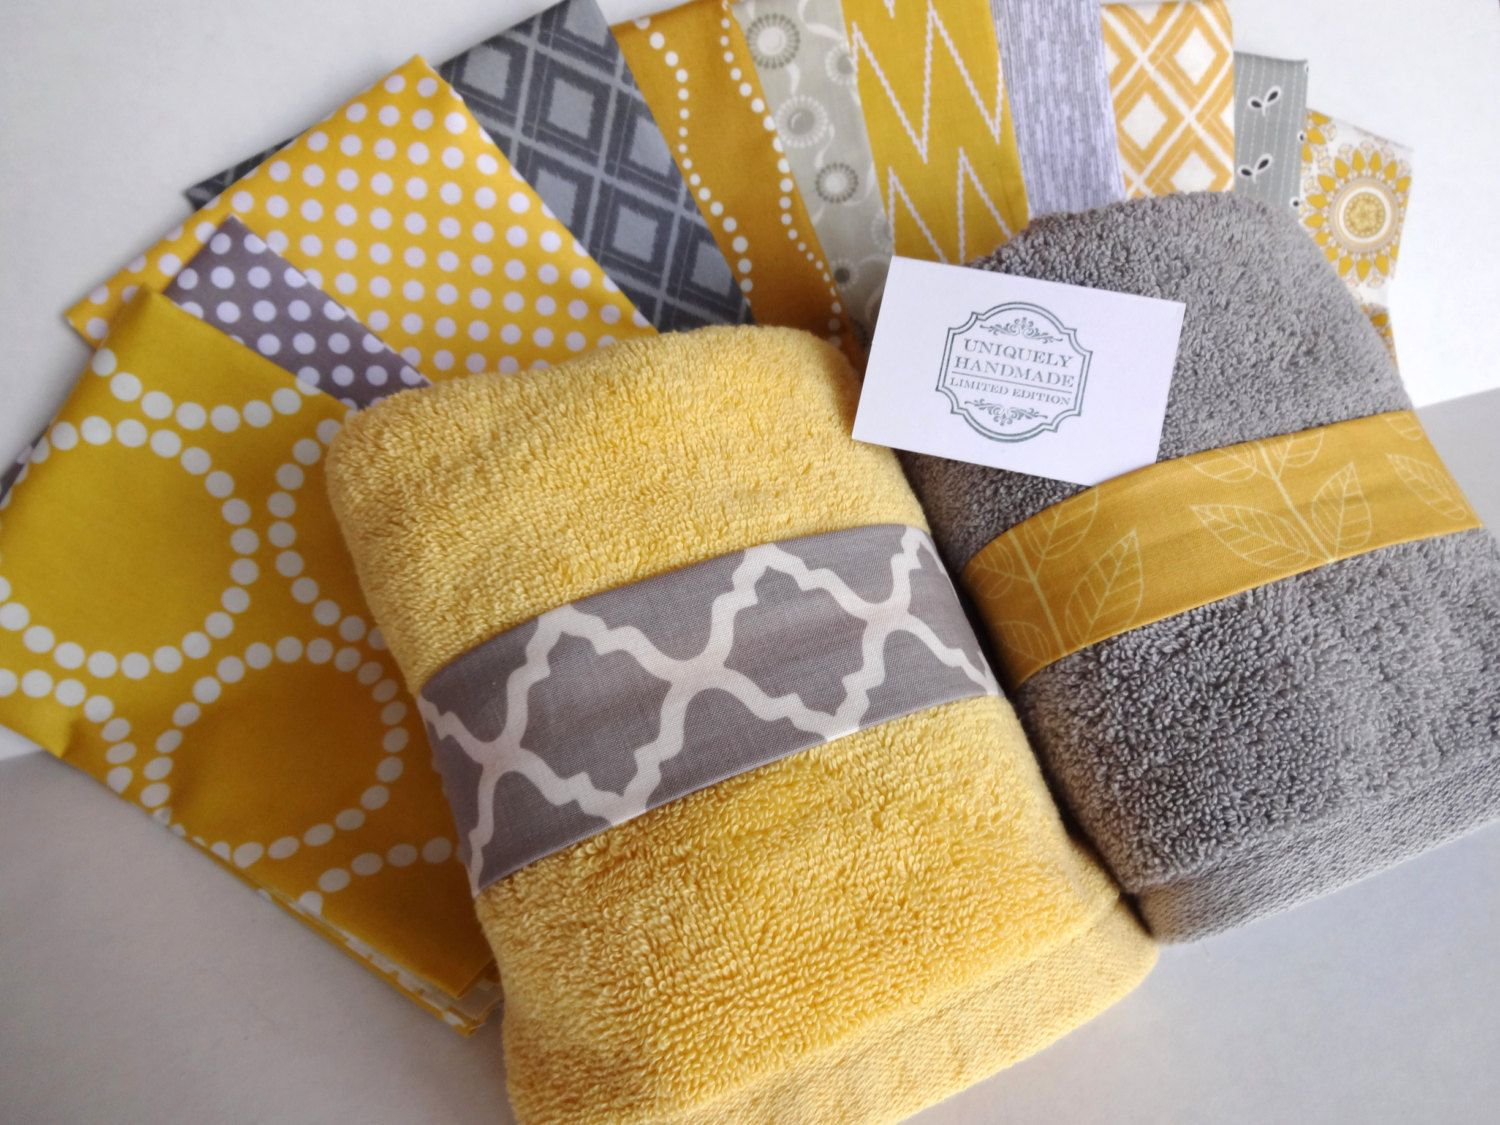 You Pick Custom Yellow And Gray Towels Custom Grey And Yellow Bathroom Hand Towel Yellow And Grey Bathroom Yellow Towel Grey Towel Yellow Bathroom Decor Yellow Towels Gray Towels